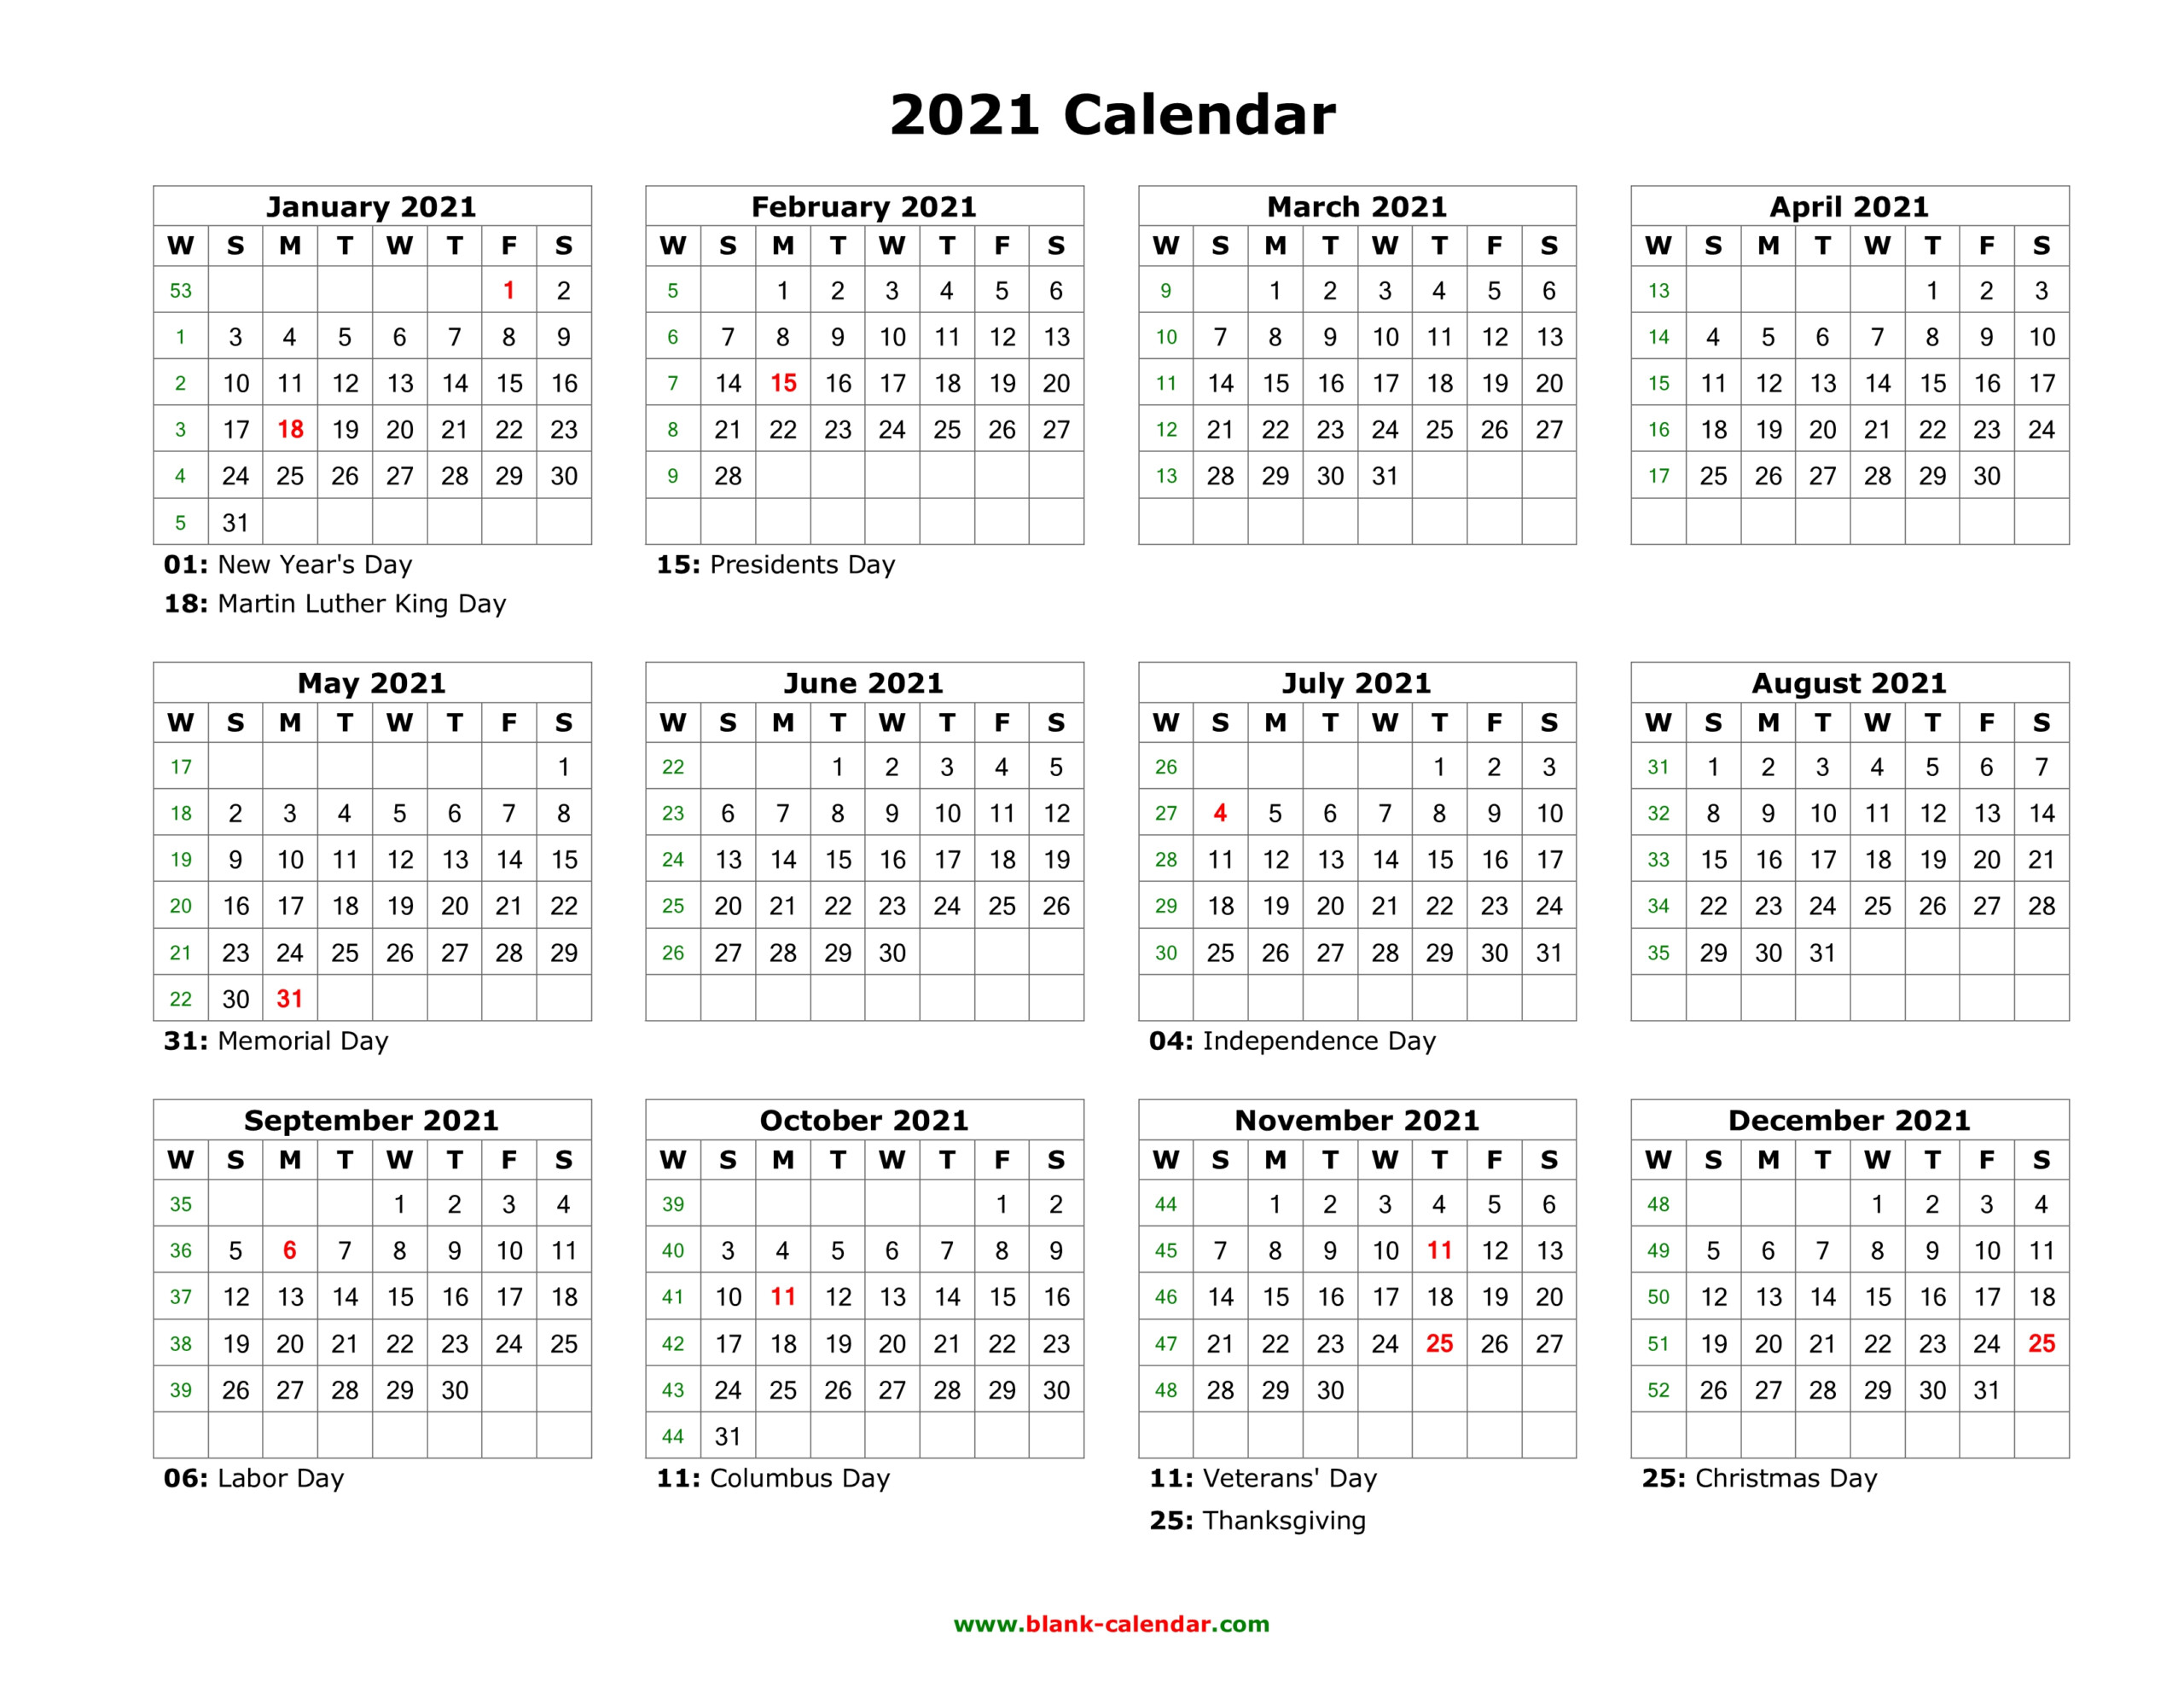 Blank Calendar 2021 | Free Download Calendar Templates